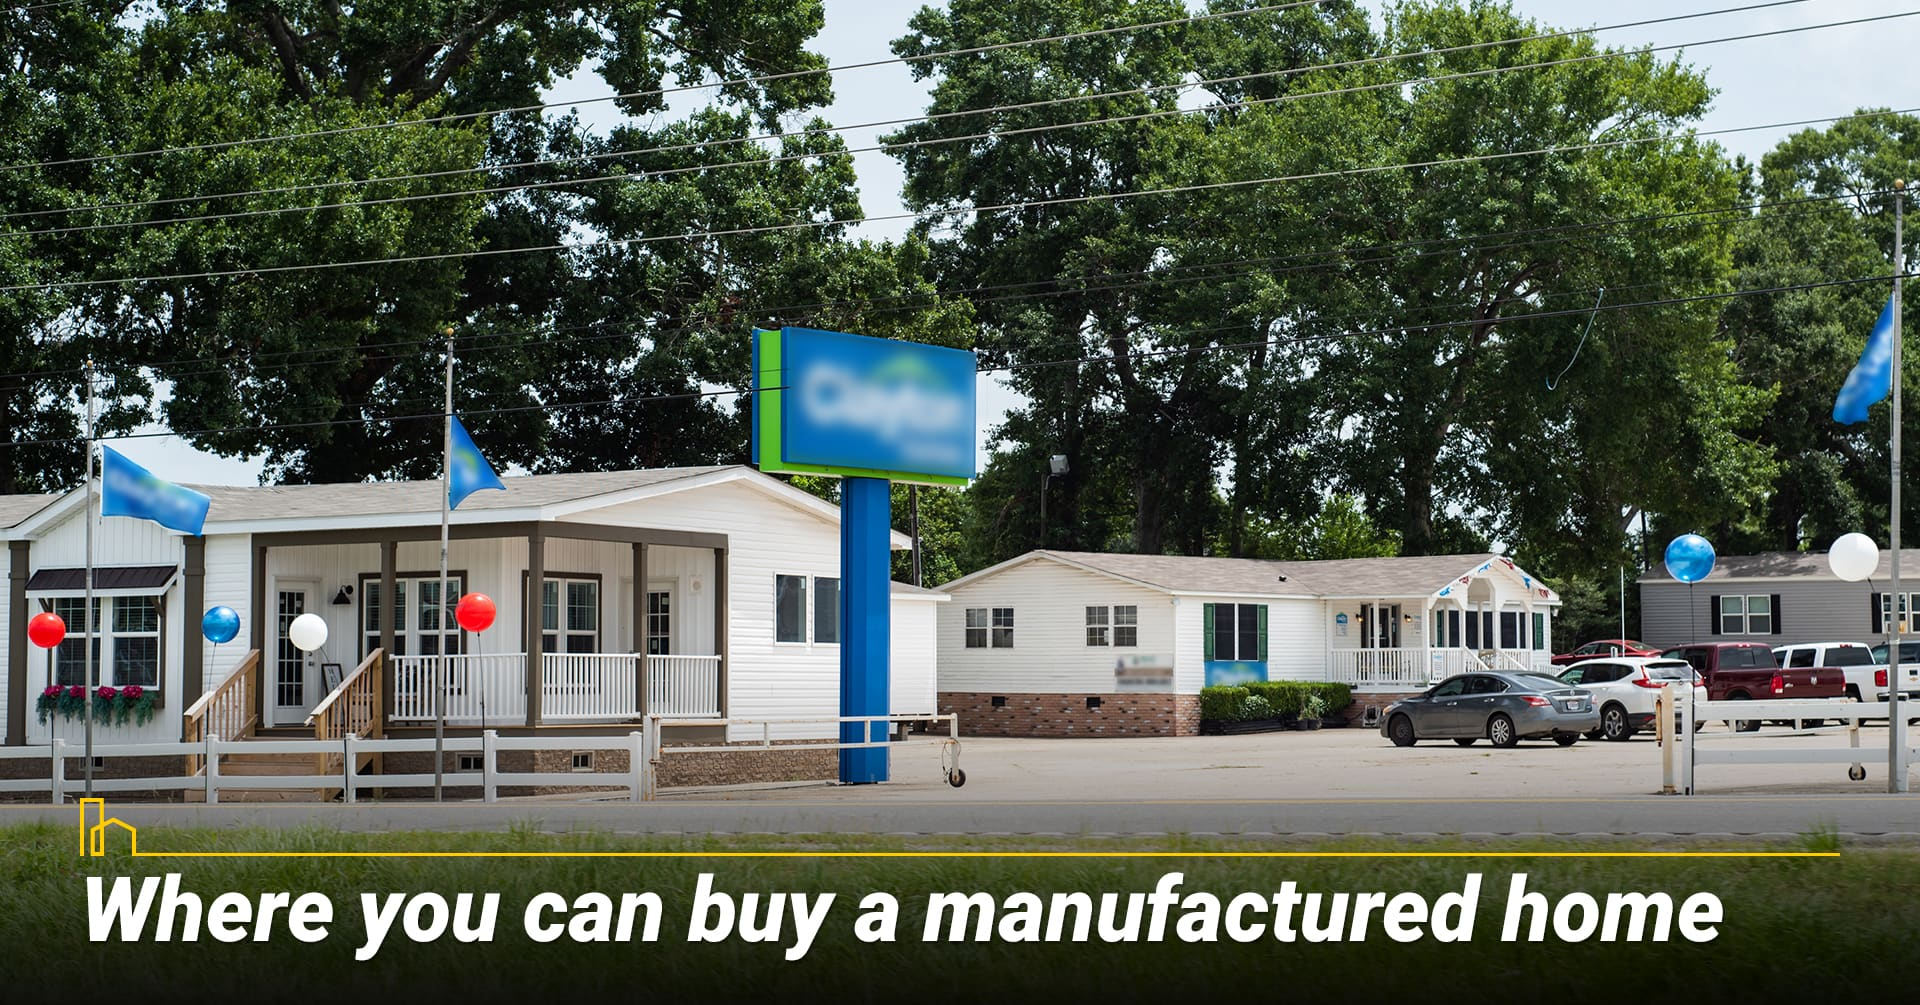 Where you can buy a manufactured home, location for manufactured home